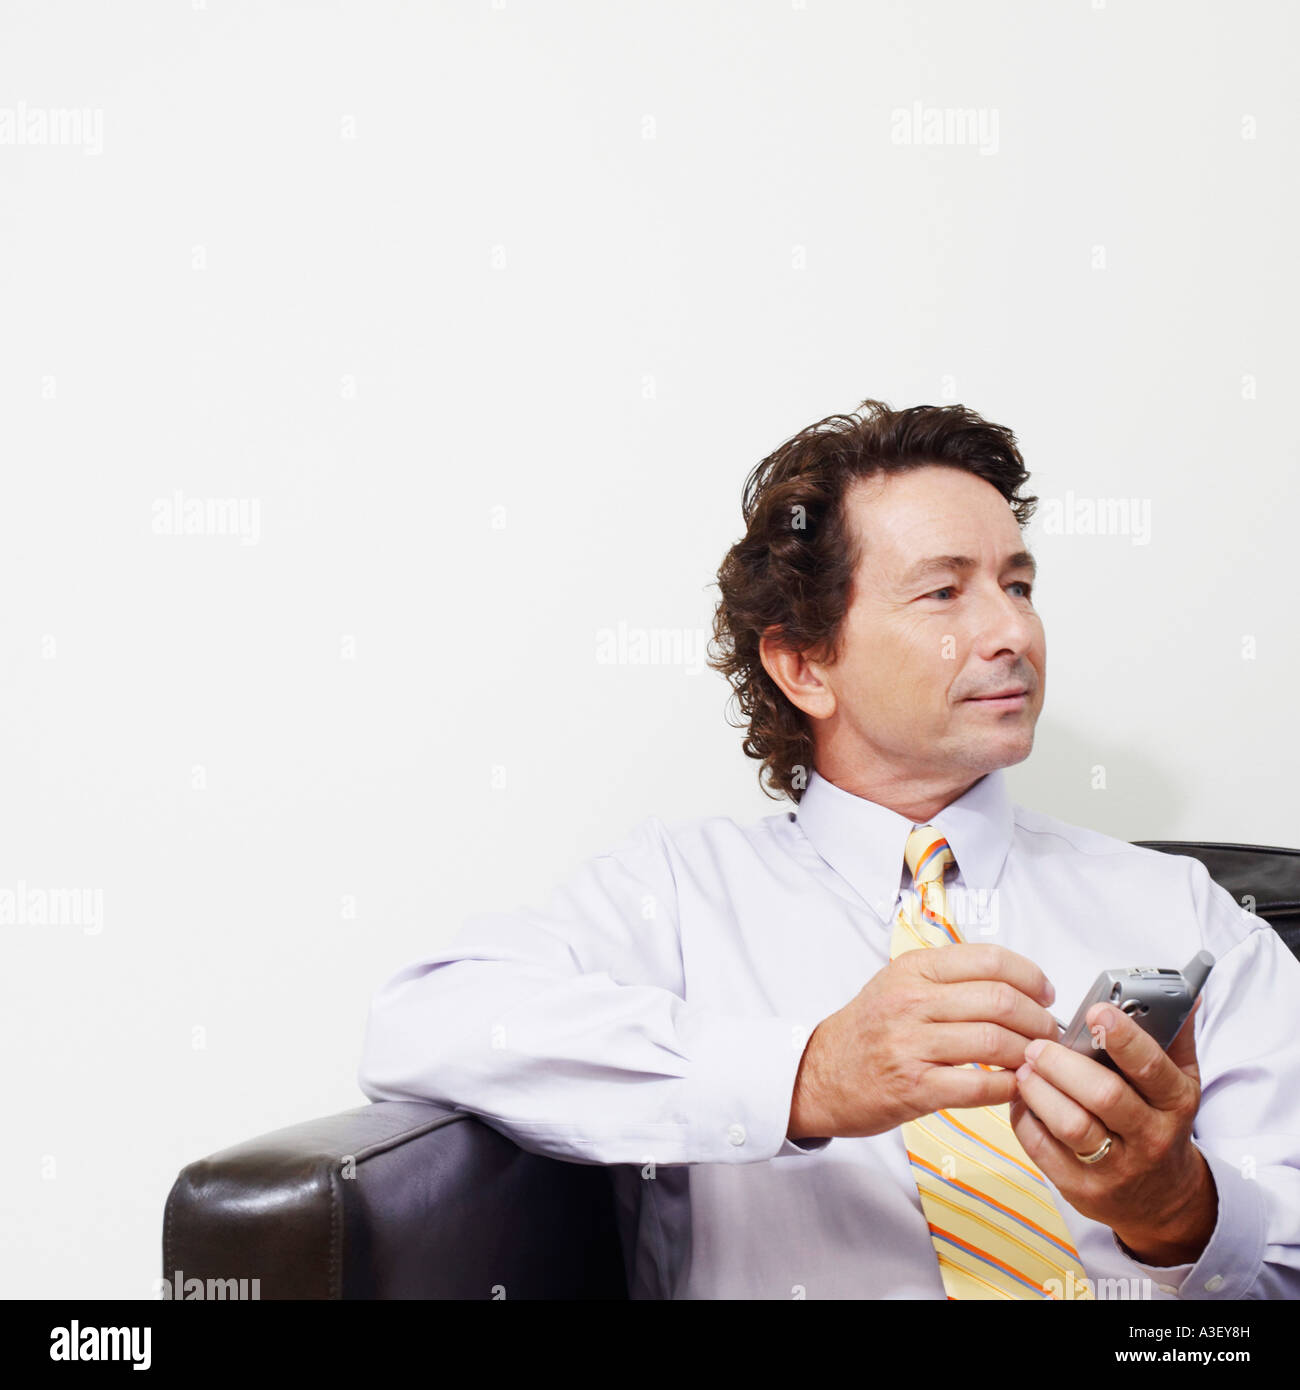 Businessman sitting on a couch and holding a mobile phone - Stock Image